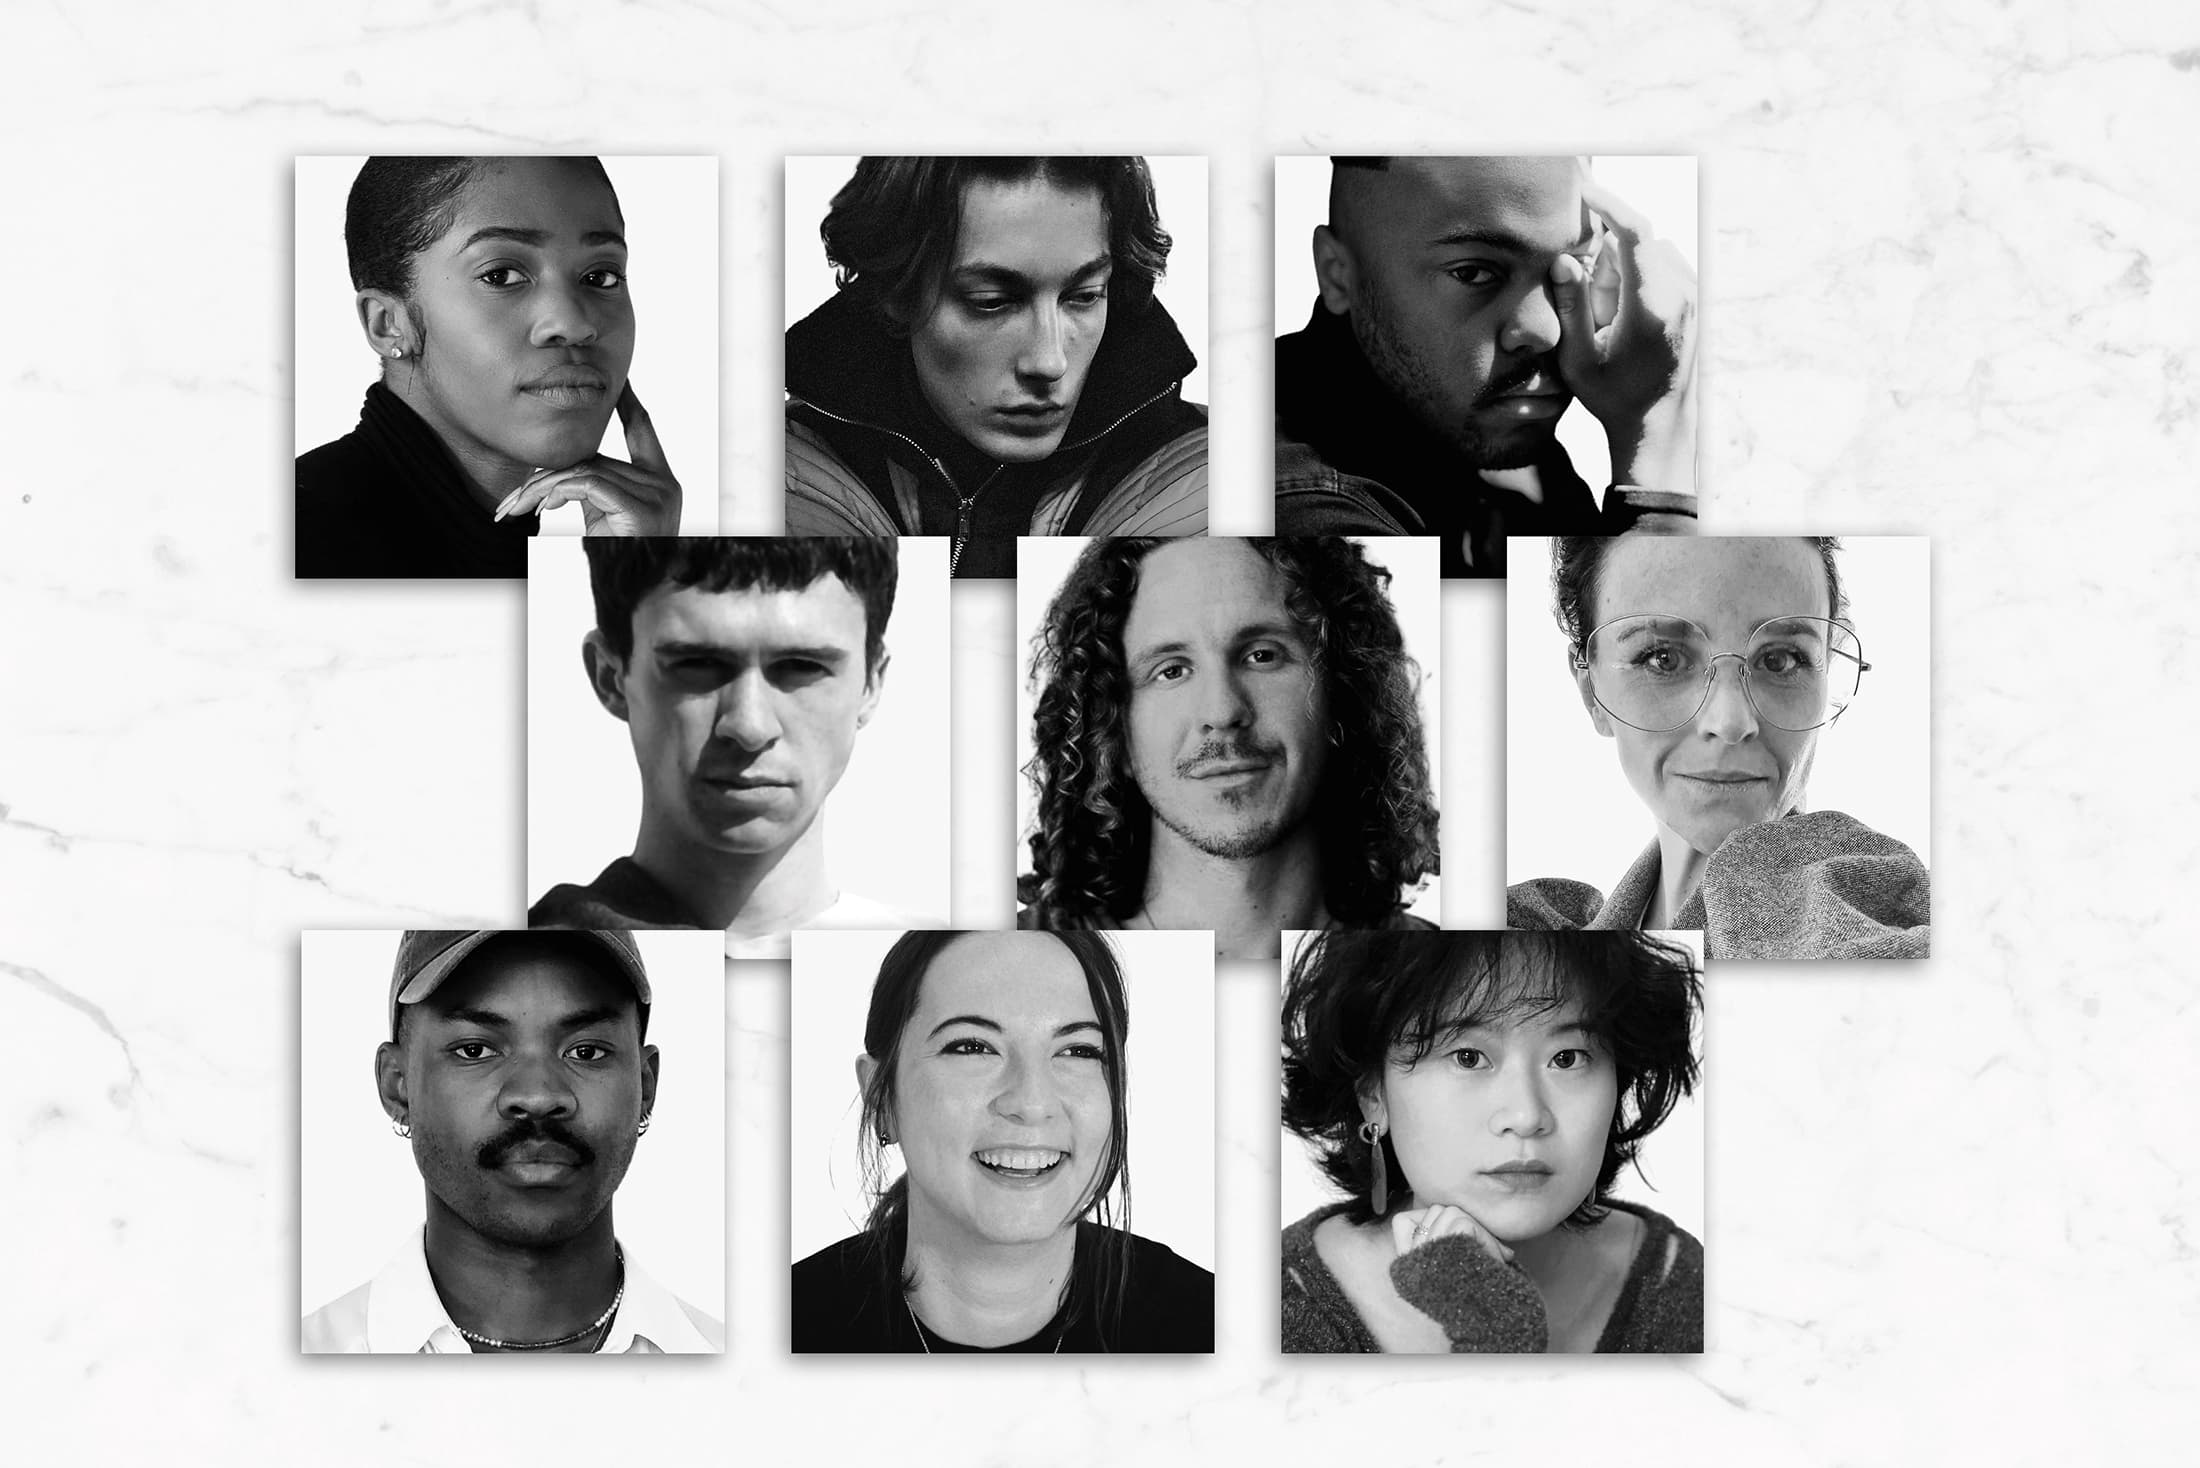 LVMH Announces 9 Finalists for the 2021 LVMH Prize